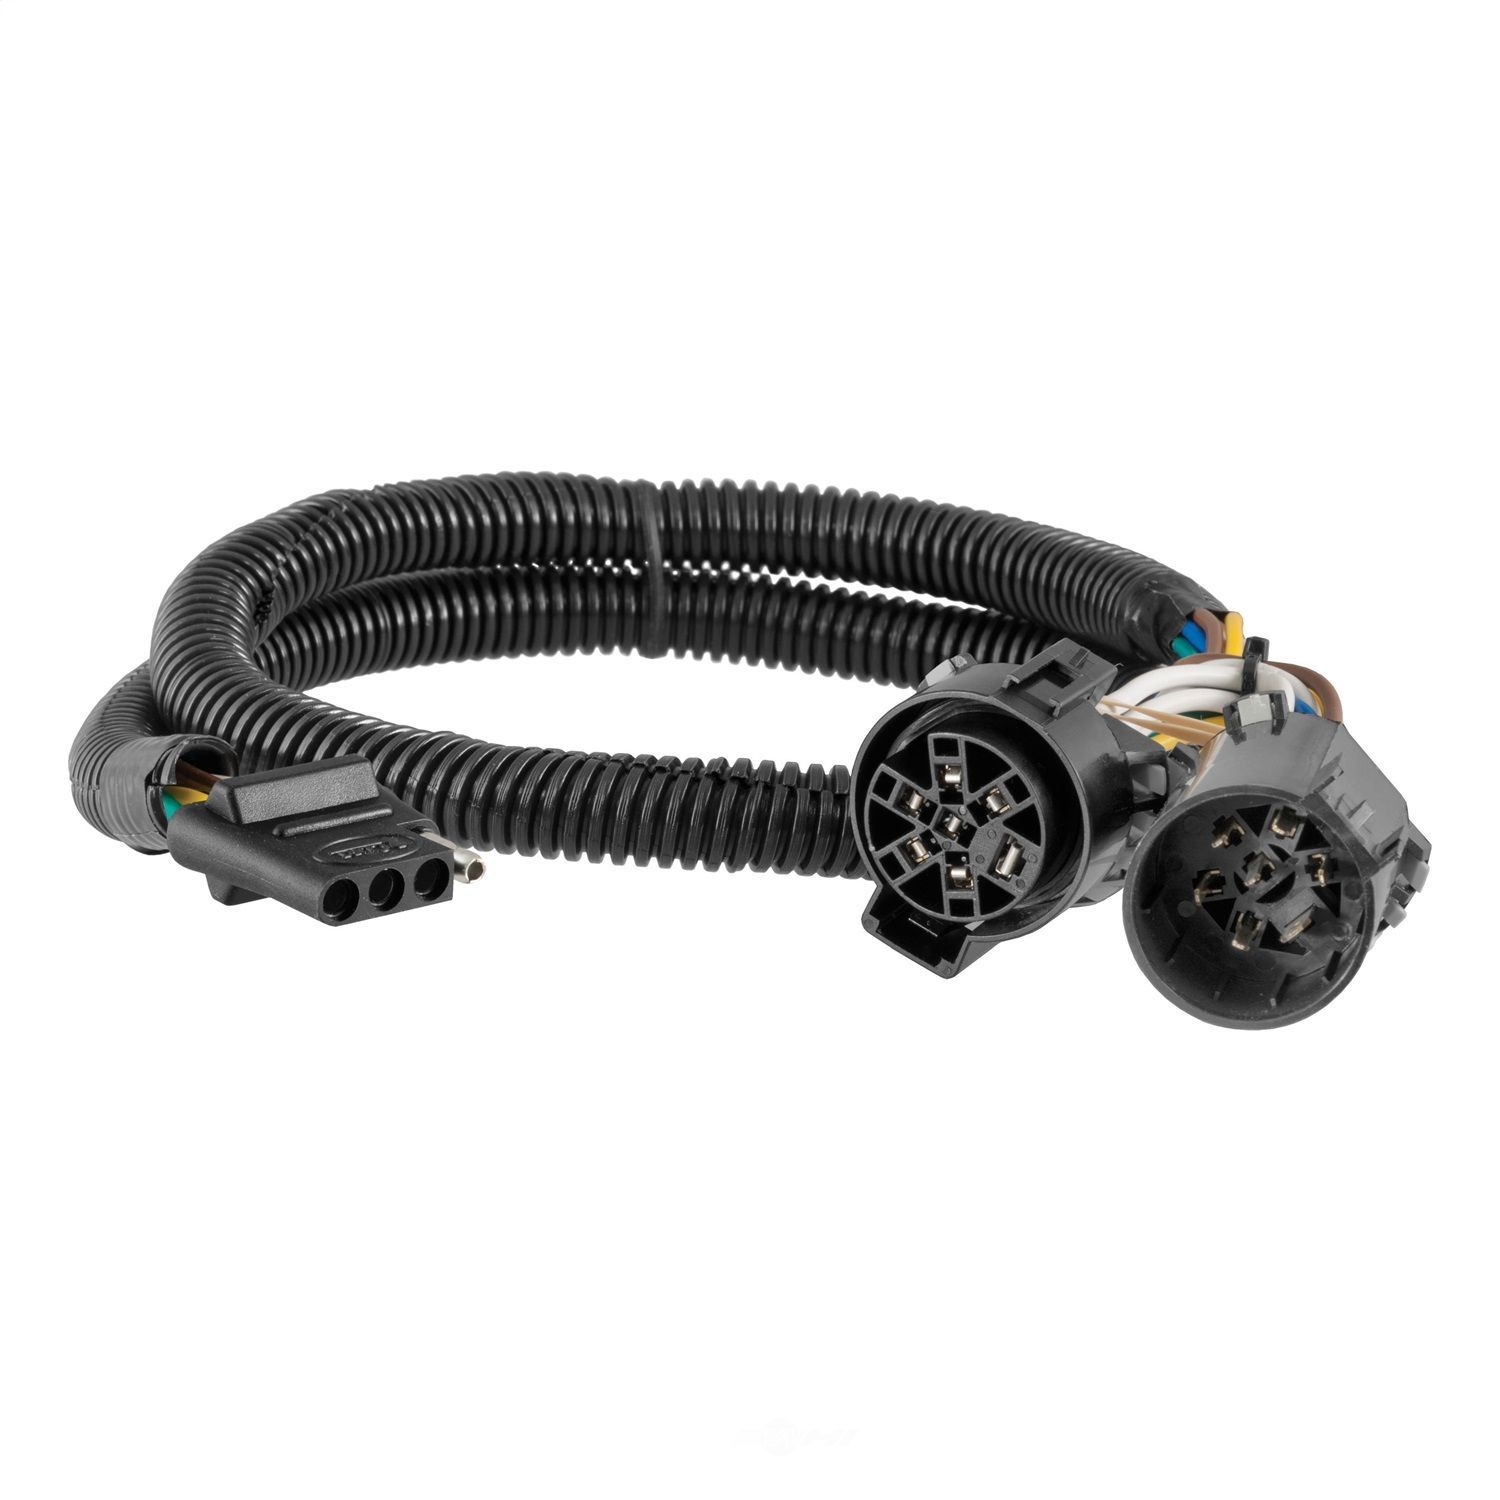 CURT MFG INC. - Wiring T-Connectors - CUR 55384